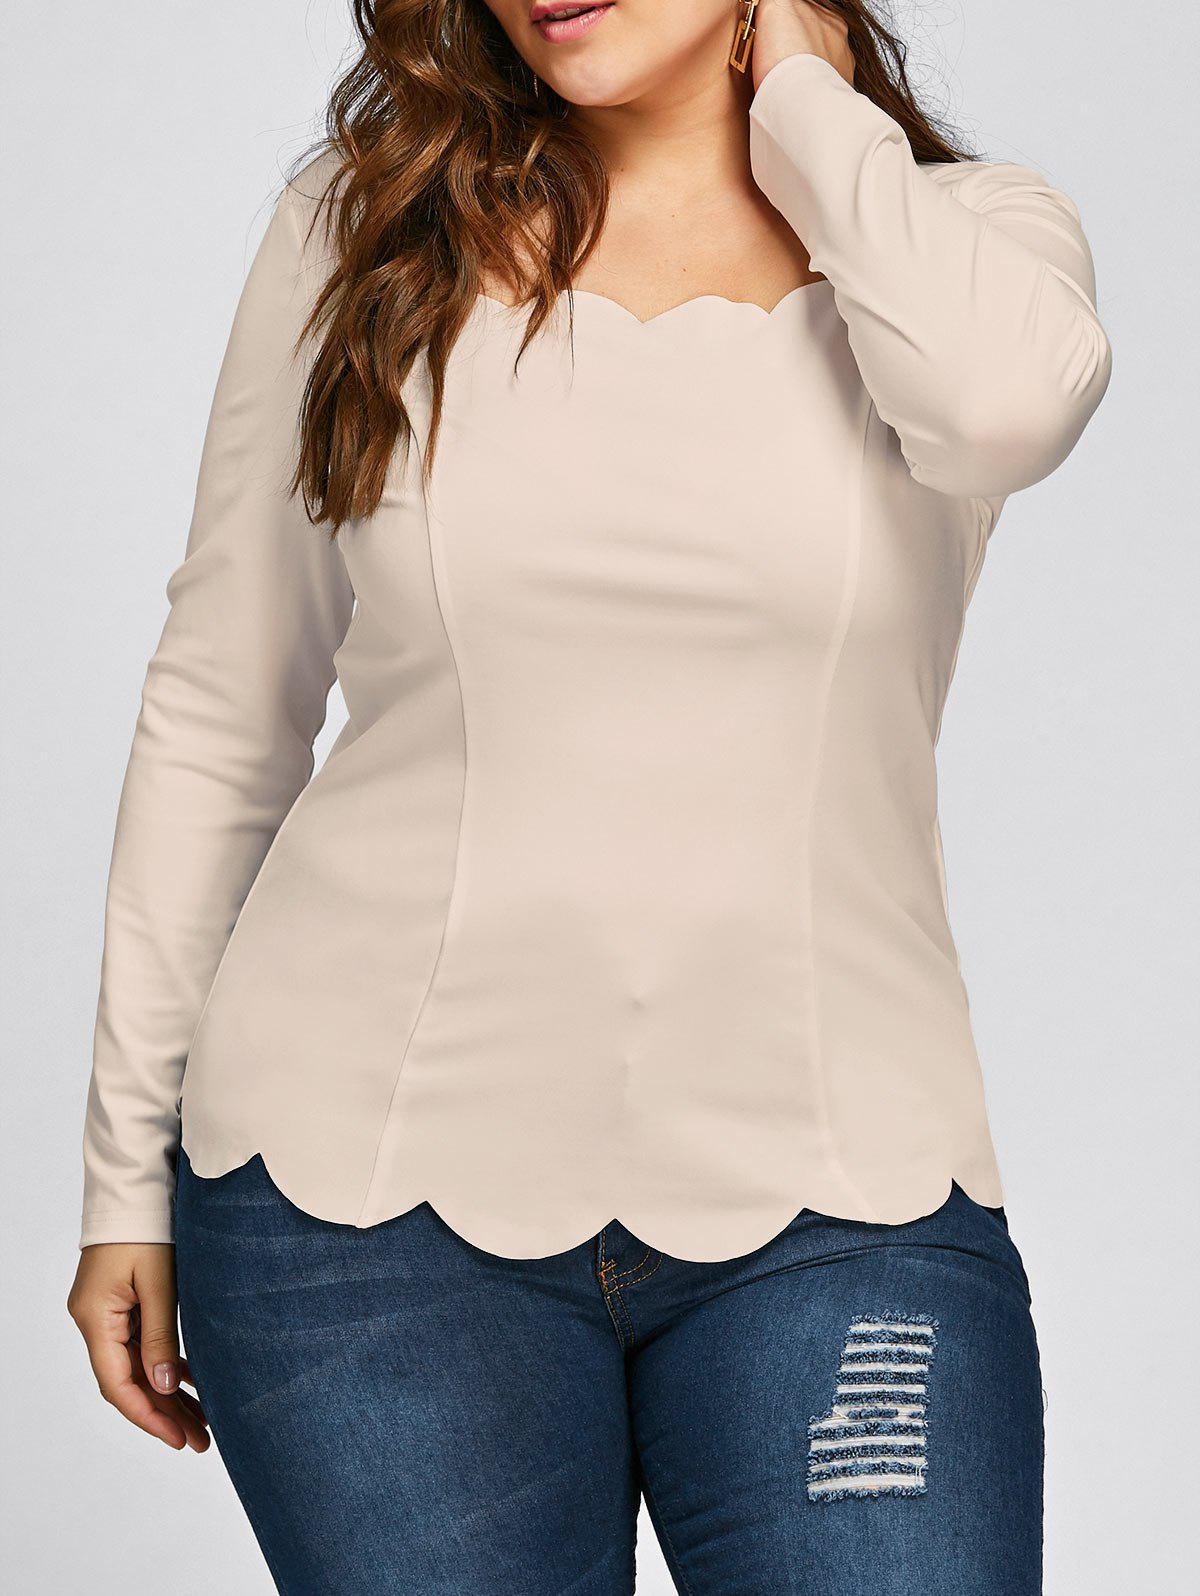 Plus Size Square Neck Scalloped Long Sleeve TopWOMEN<br><br>Size: 5XL; Color: LIGHT CAMEL; Material: Polyester,Spandex; Shirt Length: Regular; Sleeve Length: Full; Collar: Square Neck; Style: Fashion; Season: Fall,Spring; Pattern Type: Solid; Weight: 0.2530kg; Package Contents: 1 x Top;